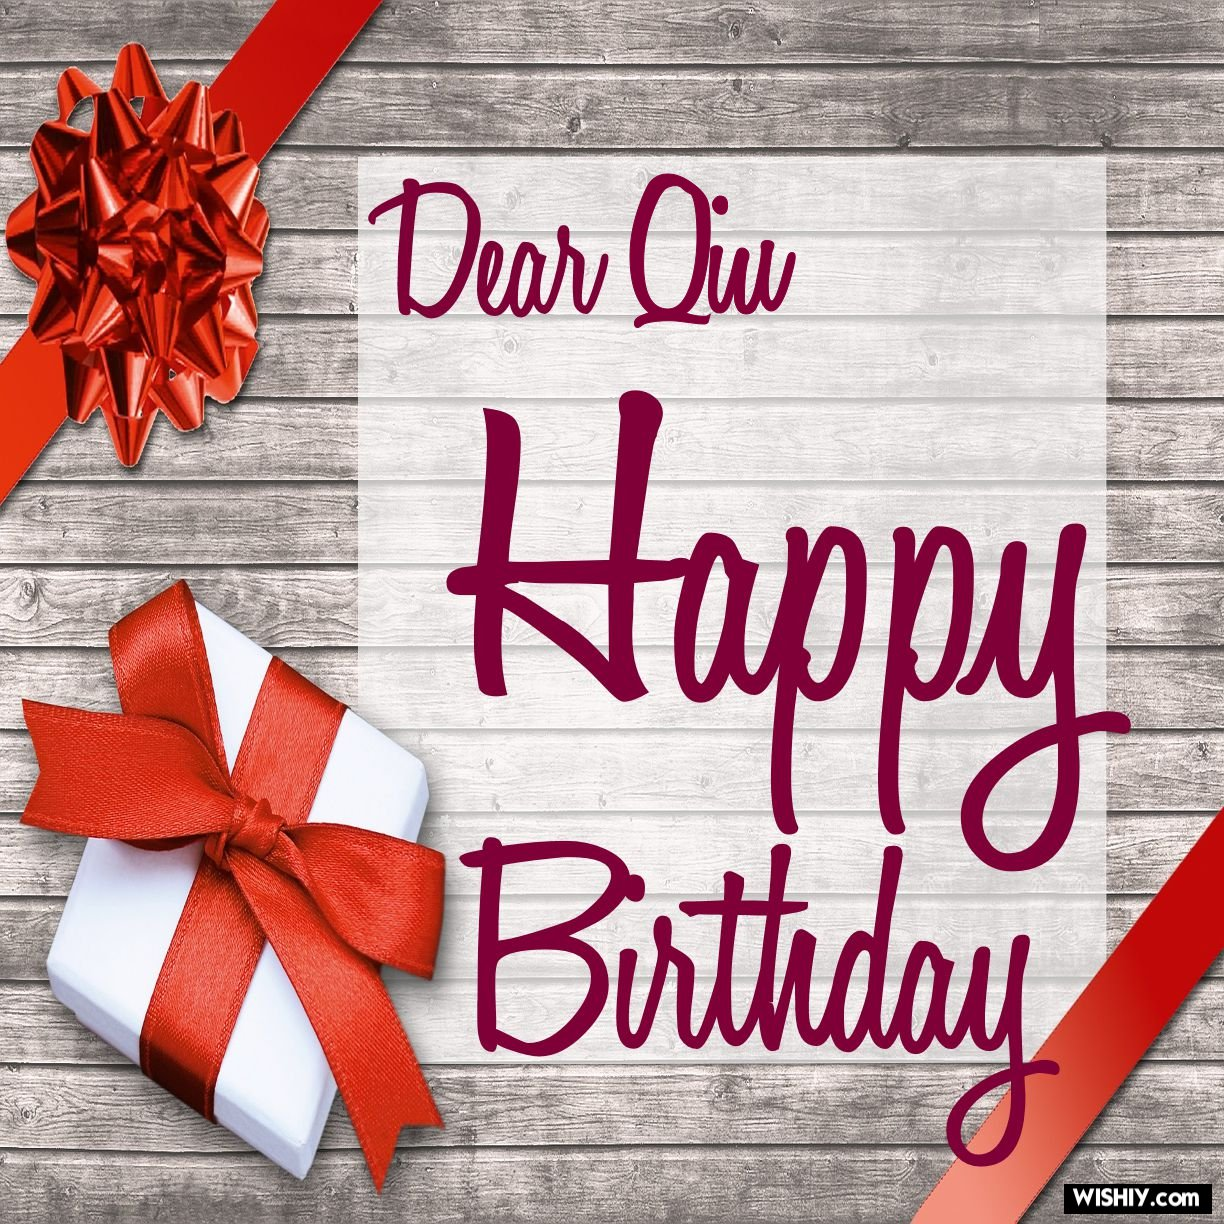 50 Best Birthday Images For Qiu Instant Download Wishiy Com